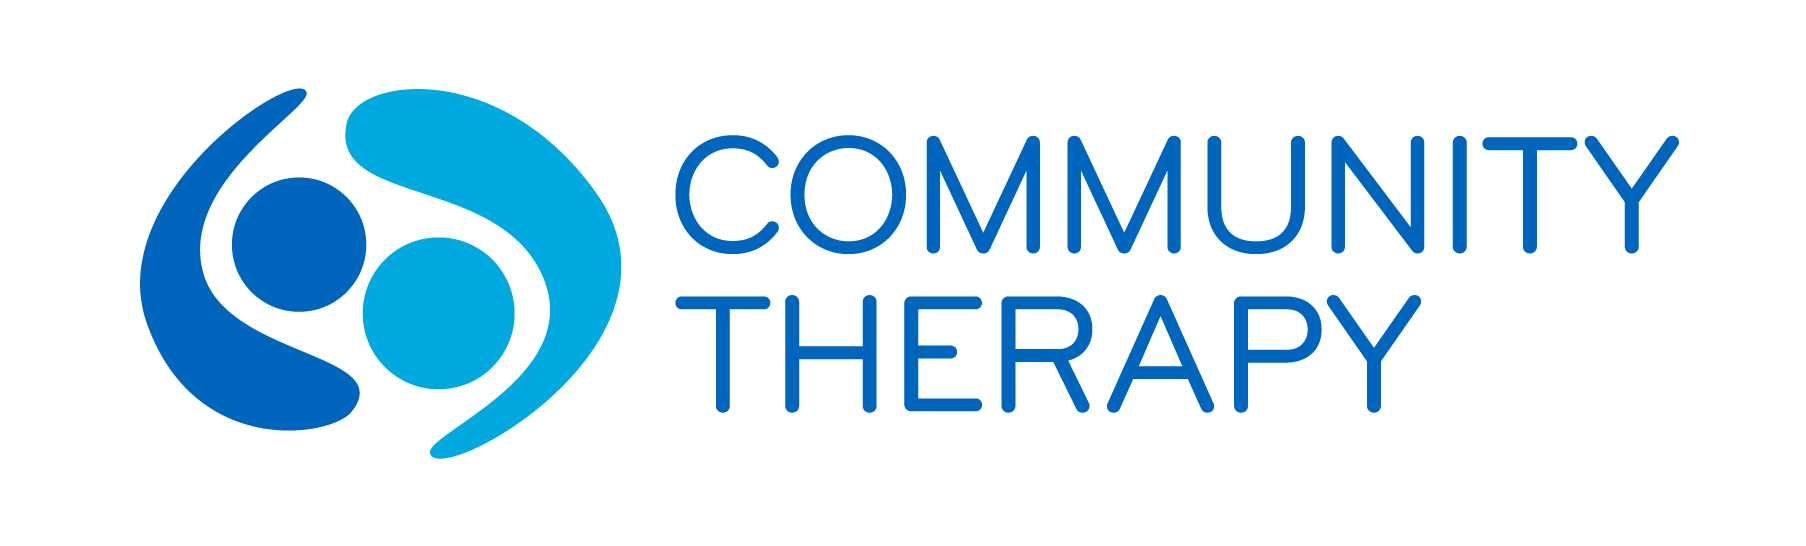 Community Therapy | Another DR Care Solutions Strategic Partnership